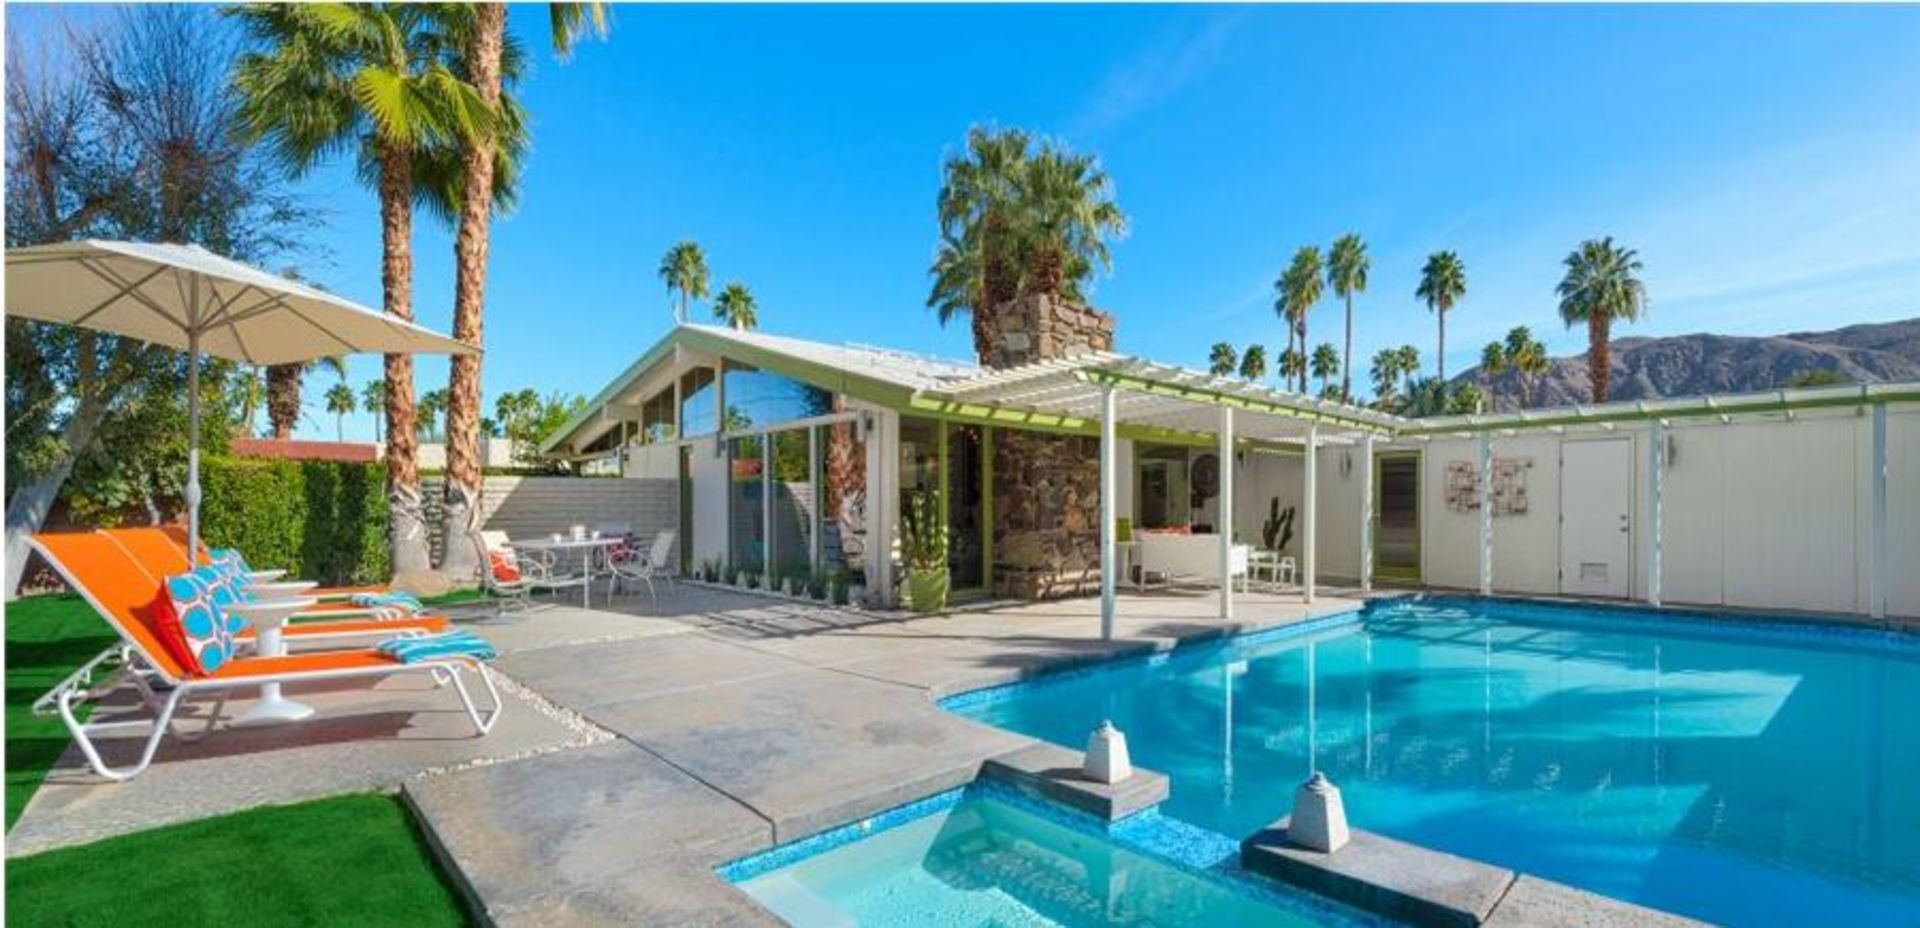 Modernism Week Fall Preview, October 18-21, Get Your Tickets Now!